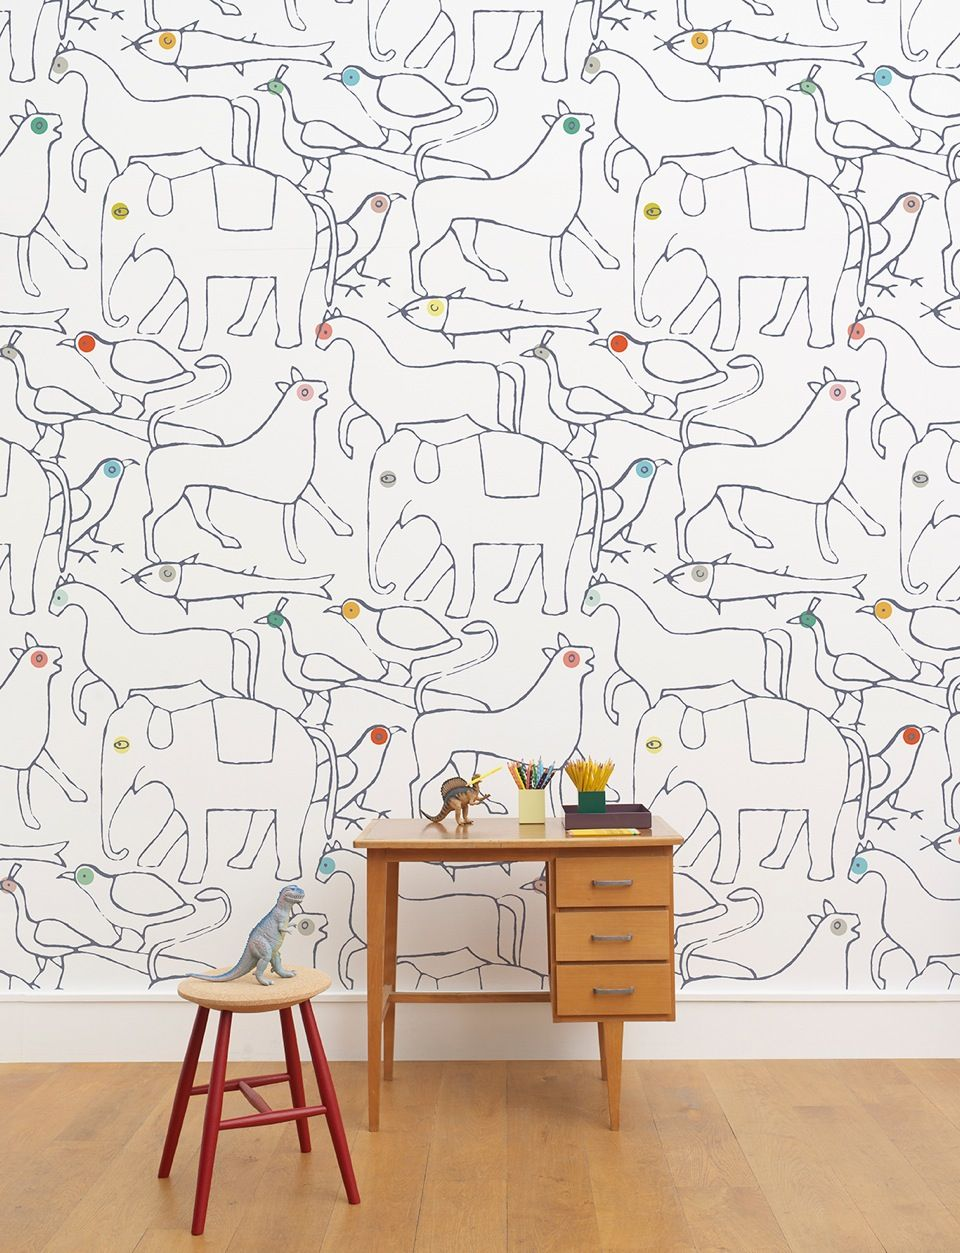 ANIMALS wallpaper by MINAKANILAB www.minakanilab.com Retailer : Maison M - Paris #maisonM #minakani #wallpaper